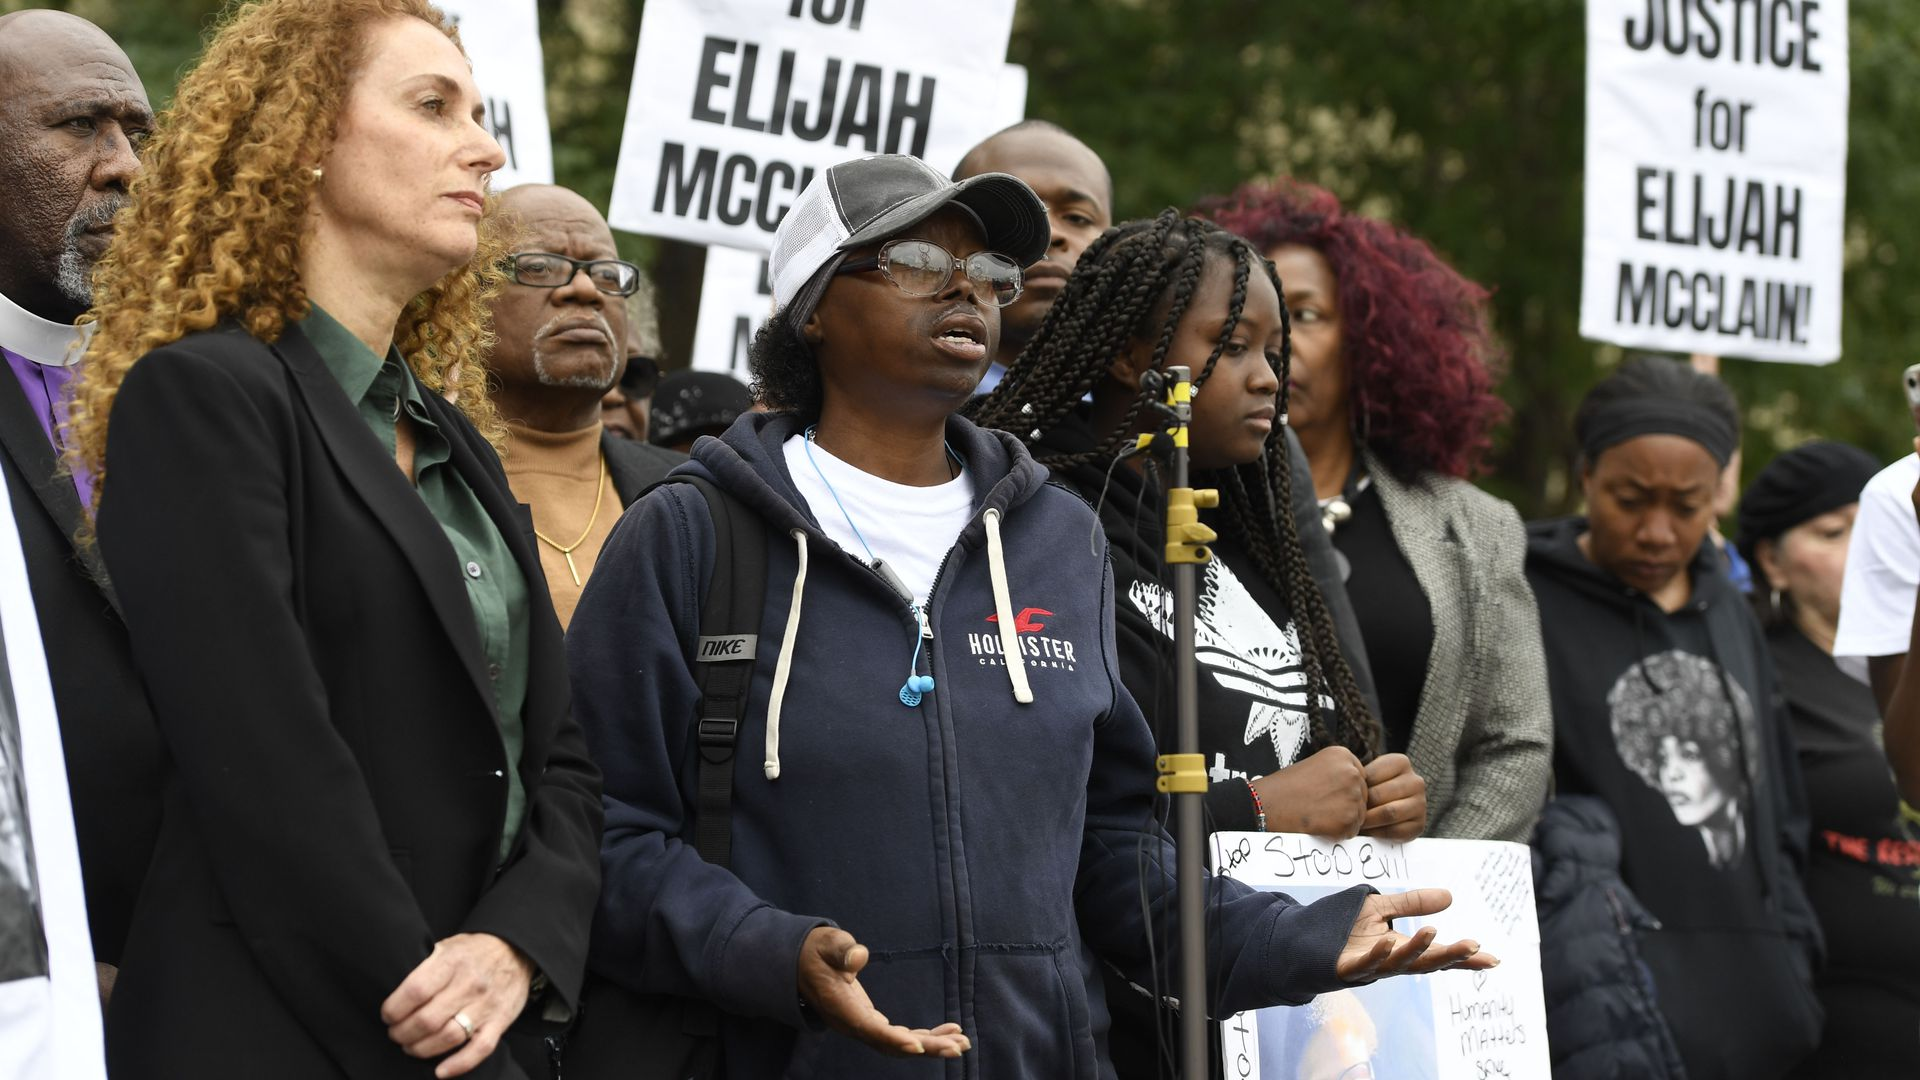 Sheneen McClain, center, mother of Elijah McClain, speaks during a press conference in front of the Aurora Municipal Center on Oct. 1, 2019.